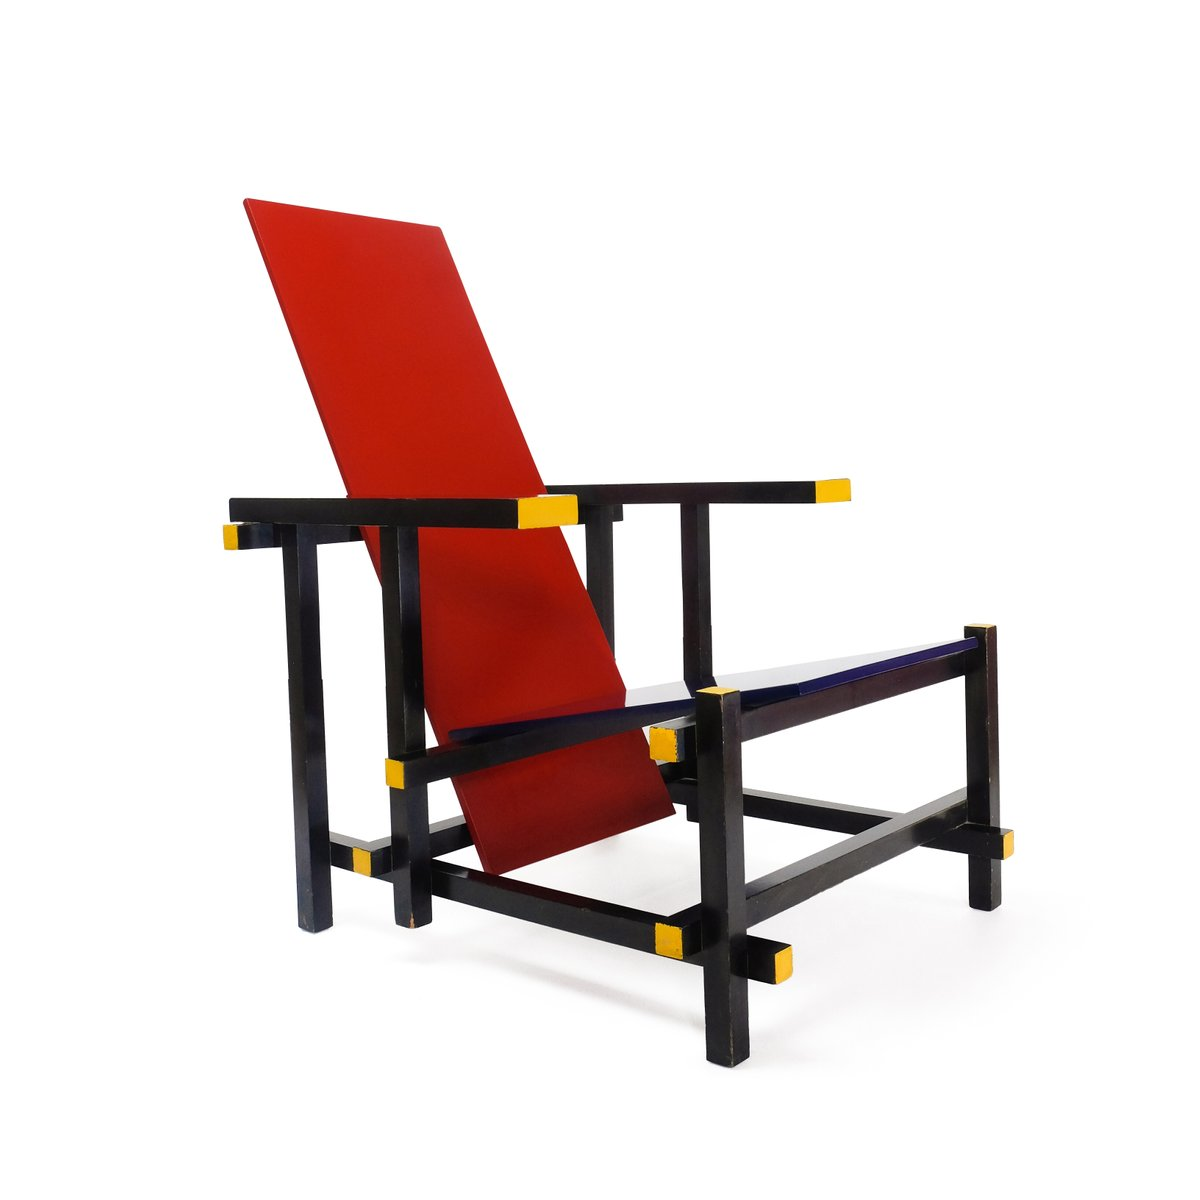 Stuhl Rot Stuhl In Rot And Blau Von Gerrit Thomas Rietveld Für Cassina